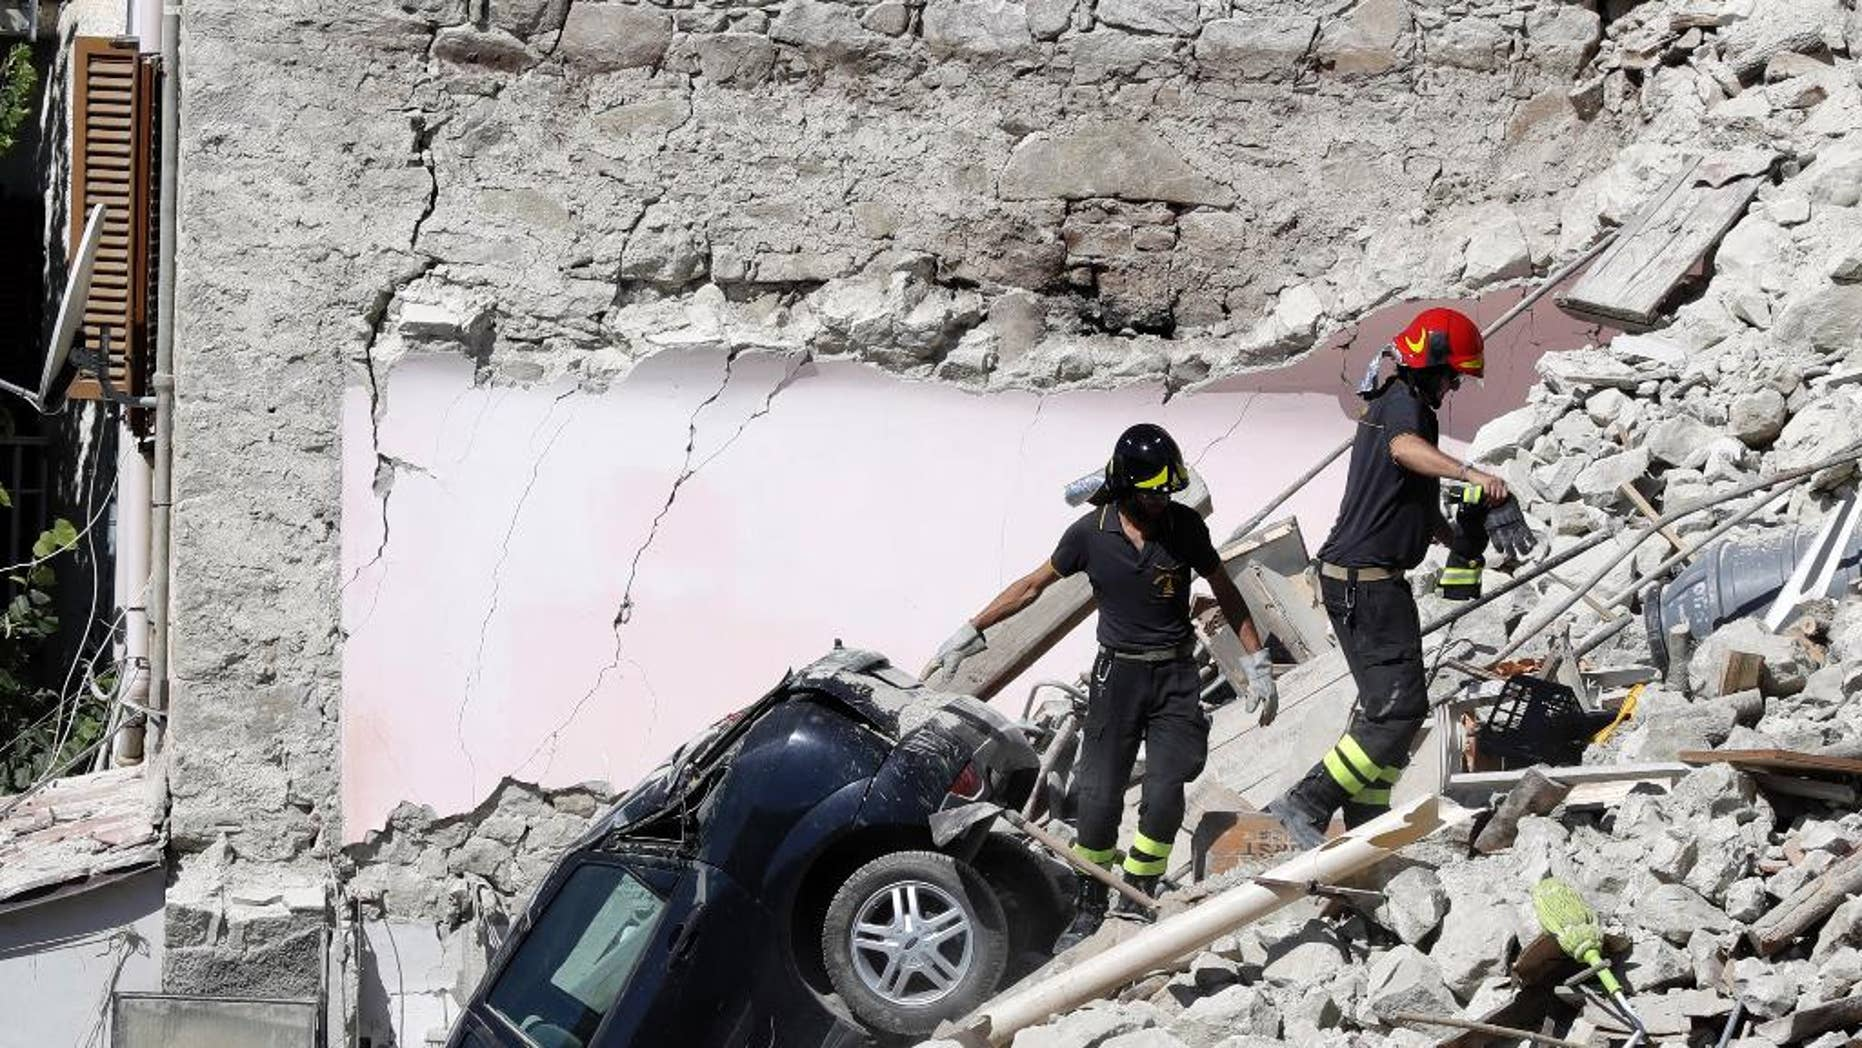 Rescuers make their way through destroyed houses following Wednesday's earthquake in Pescara Del Tronto, Italy, Thursday, Aug. 25, 2016. Rescue crews raced against time Thursday looking for survivors from the earthquake that leveled three towns in central Italy, but the death toll rose to 247 and Italy once again anguished over trying to secure its medieval communities built on seismic lands.  (AP Photo/Gregorio Borgia)